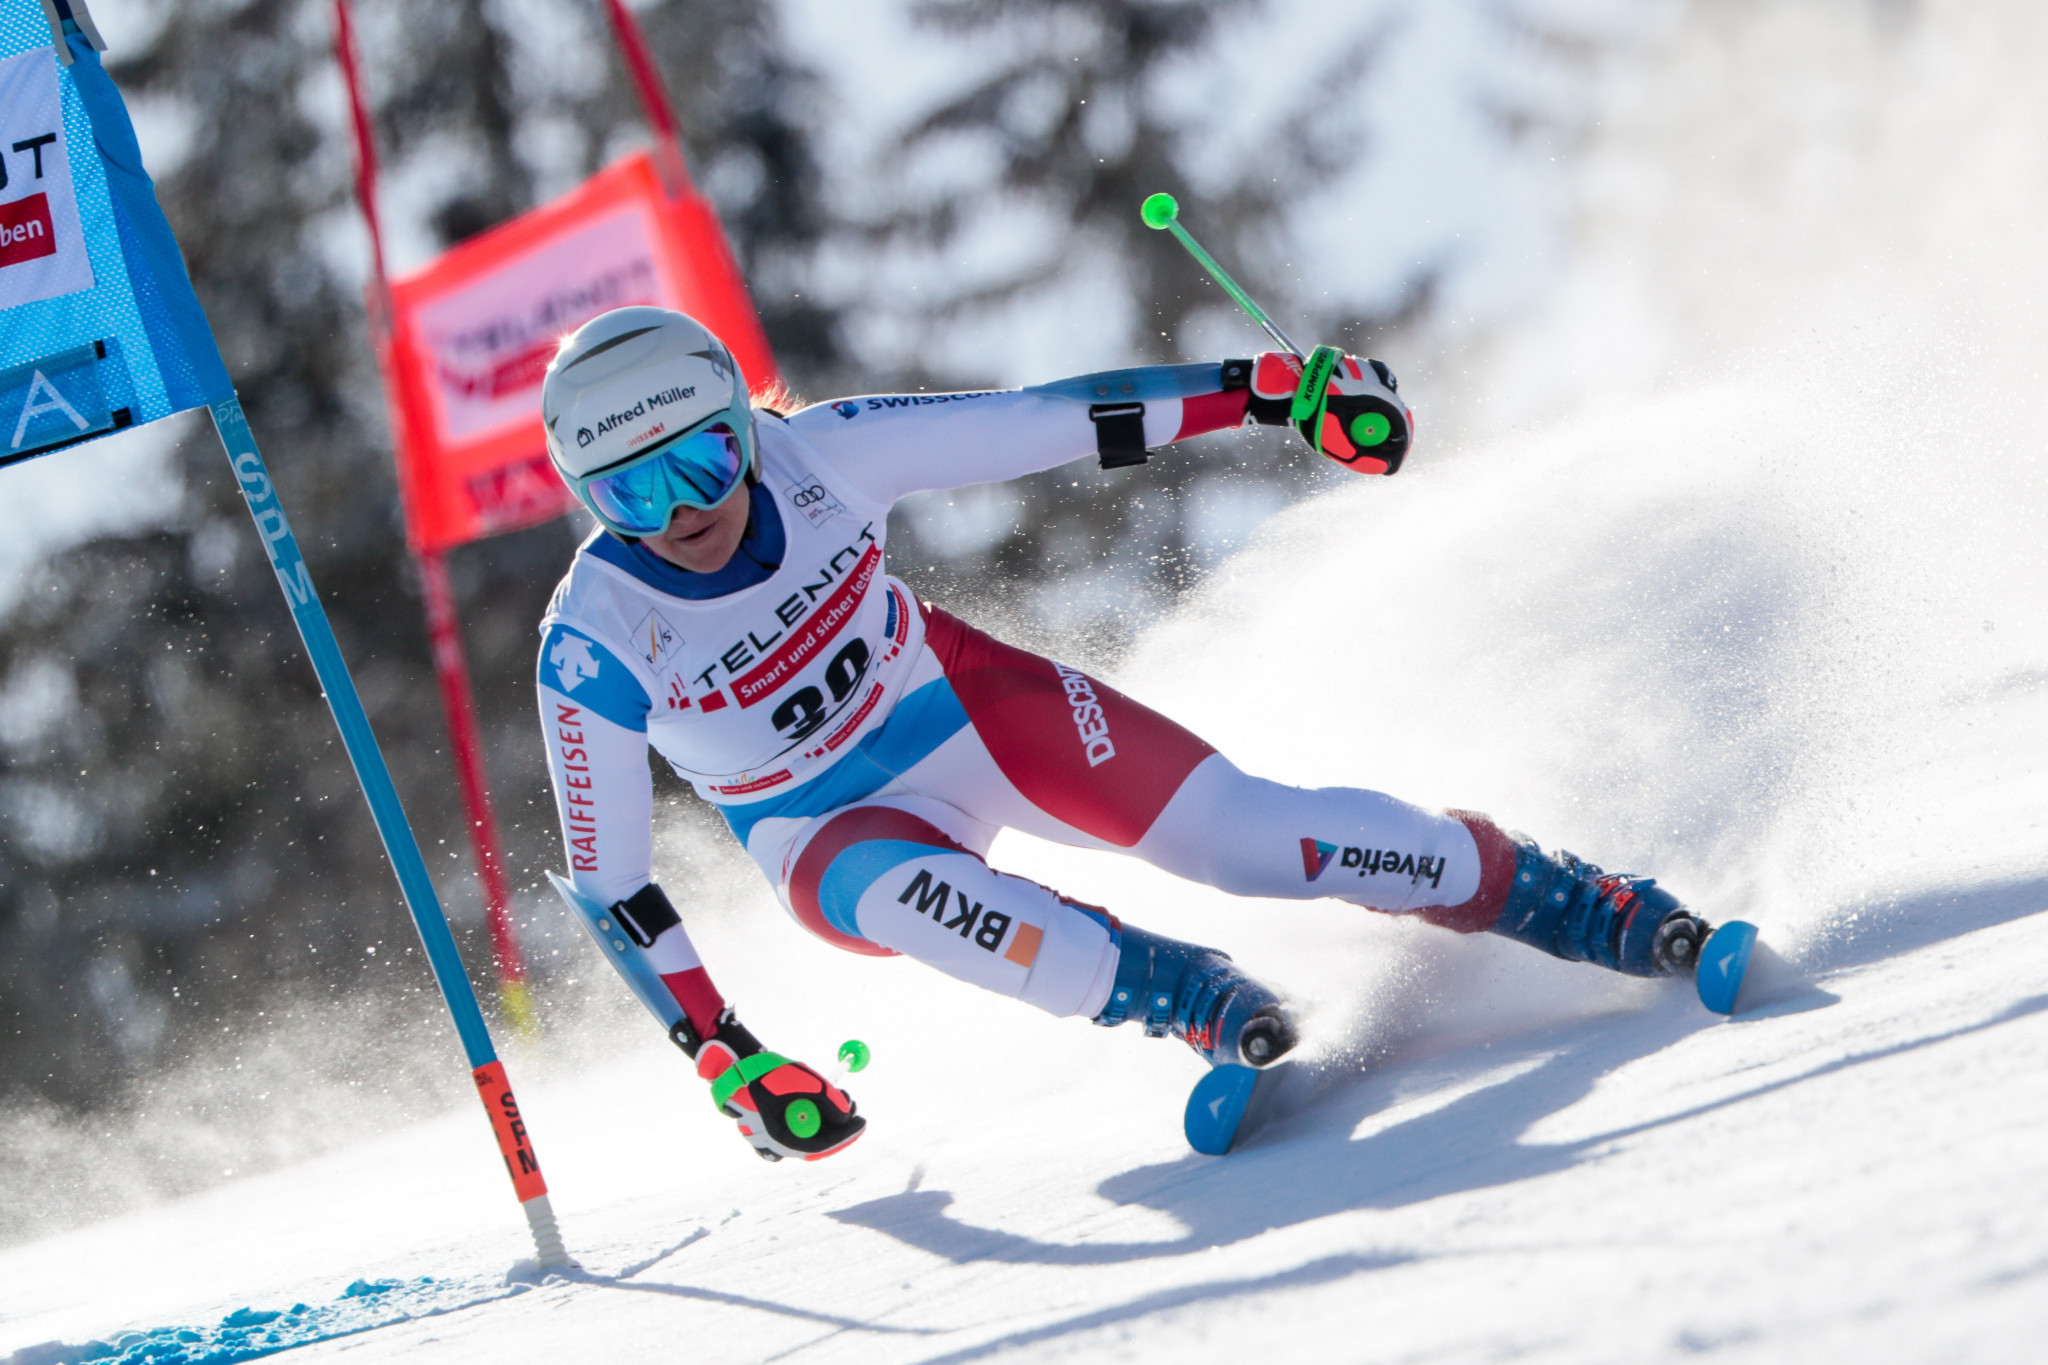 Nufer, Murisier and Simonet added to 19-person Swiss national Alpine skiing team